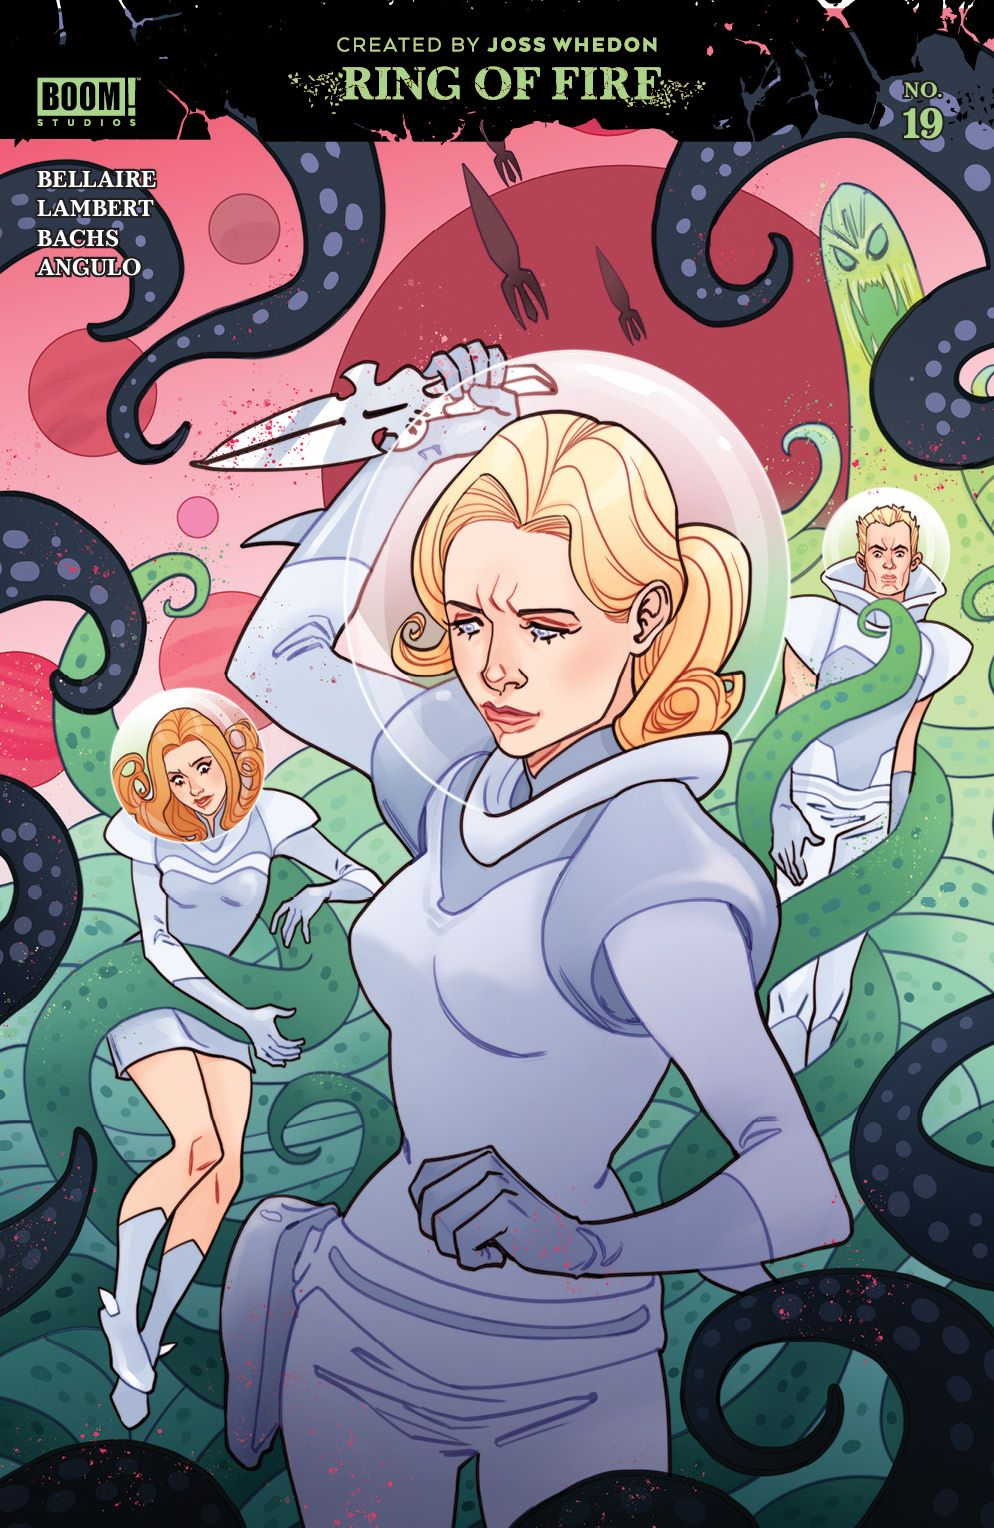 Buffy_019_Cover_B_Multiverse ComicList: BOOM! Studios New Releases for 11/04/2020